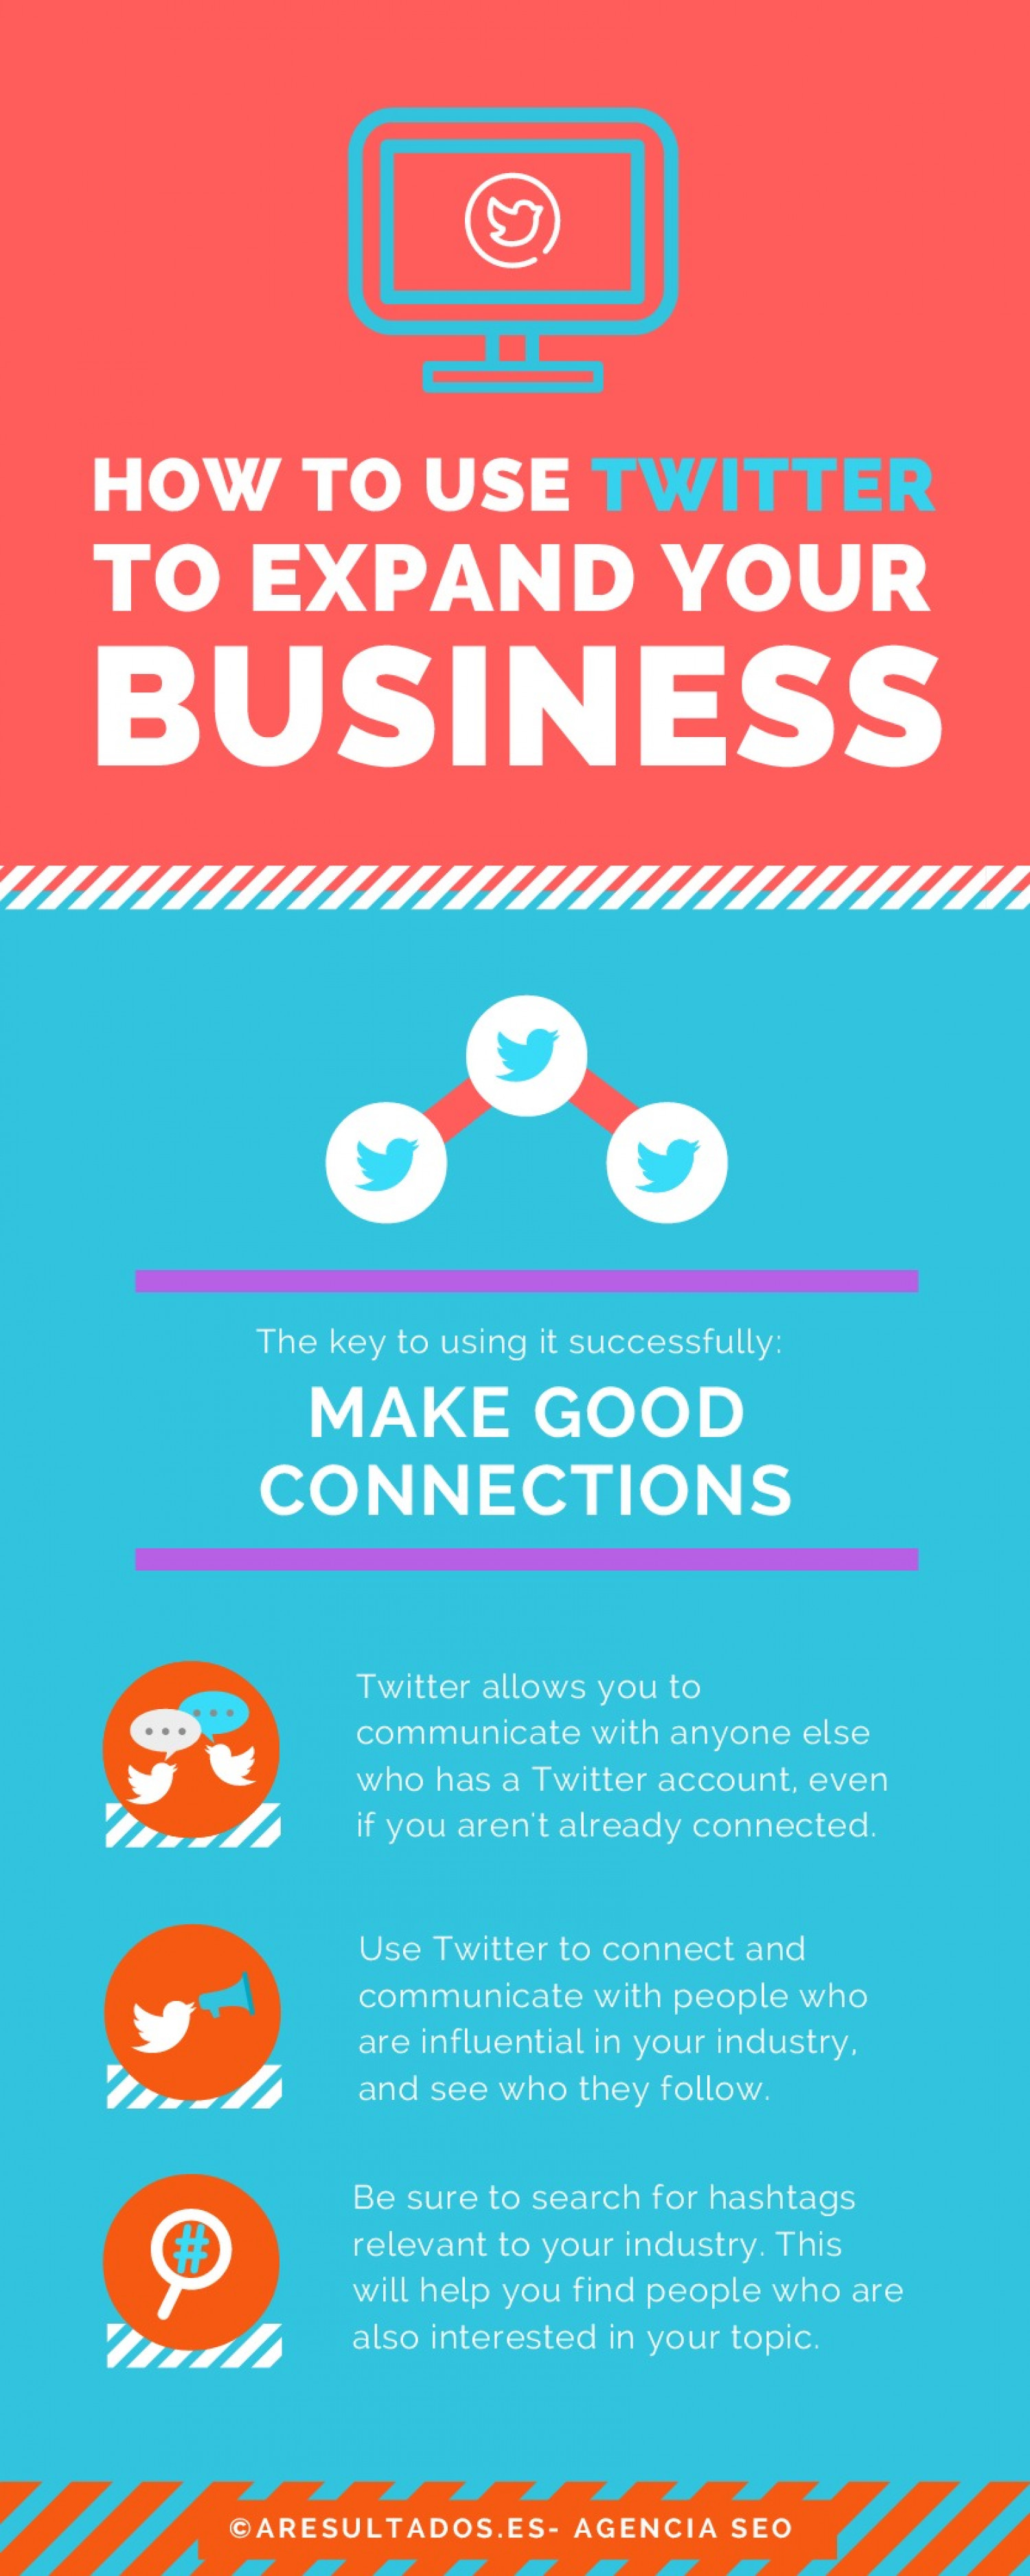 How to use Twitter To Expand Your Business - Agencia SEO - ARESULTADOS.es Infographic